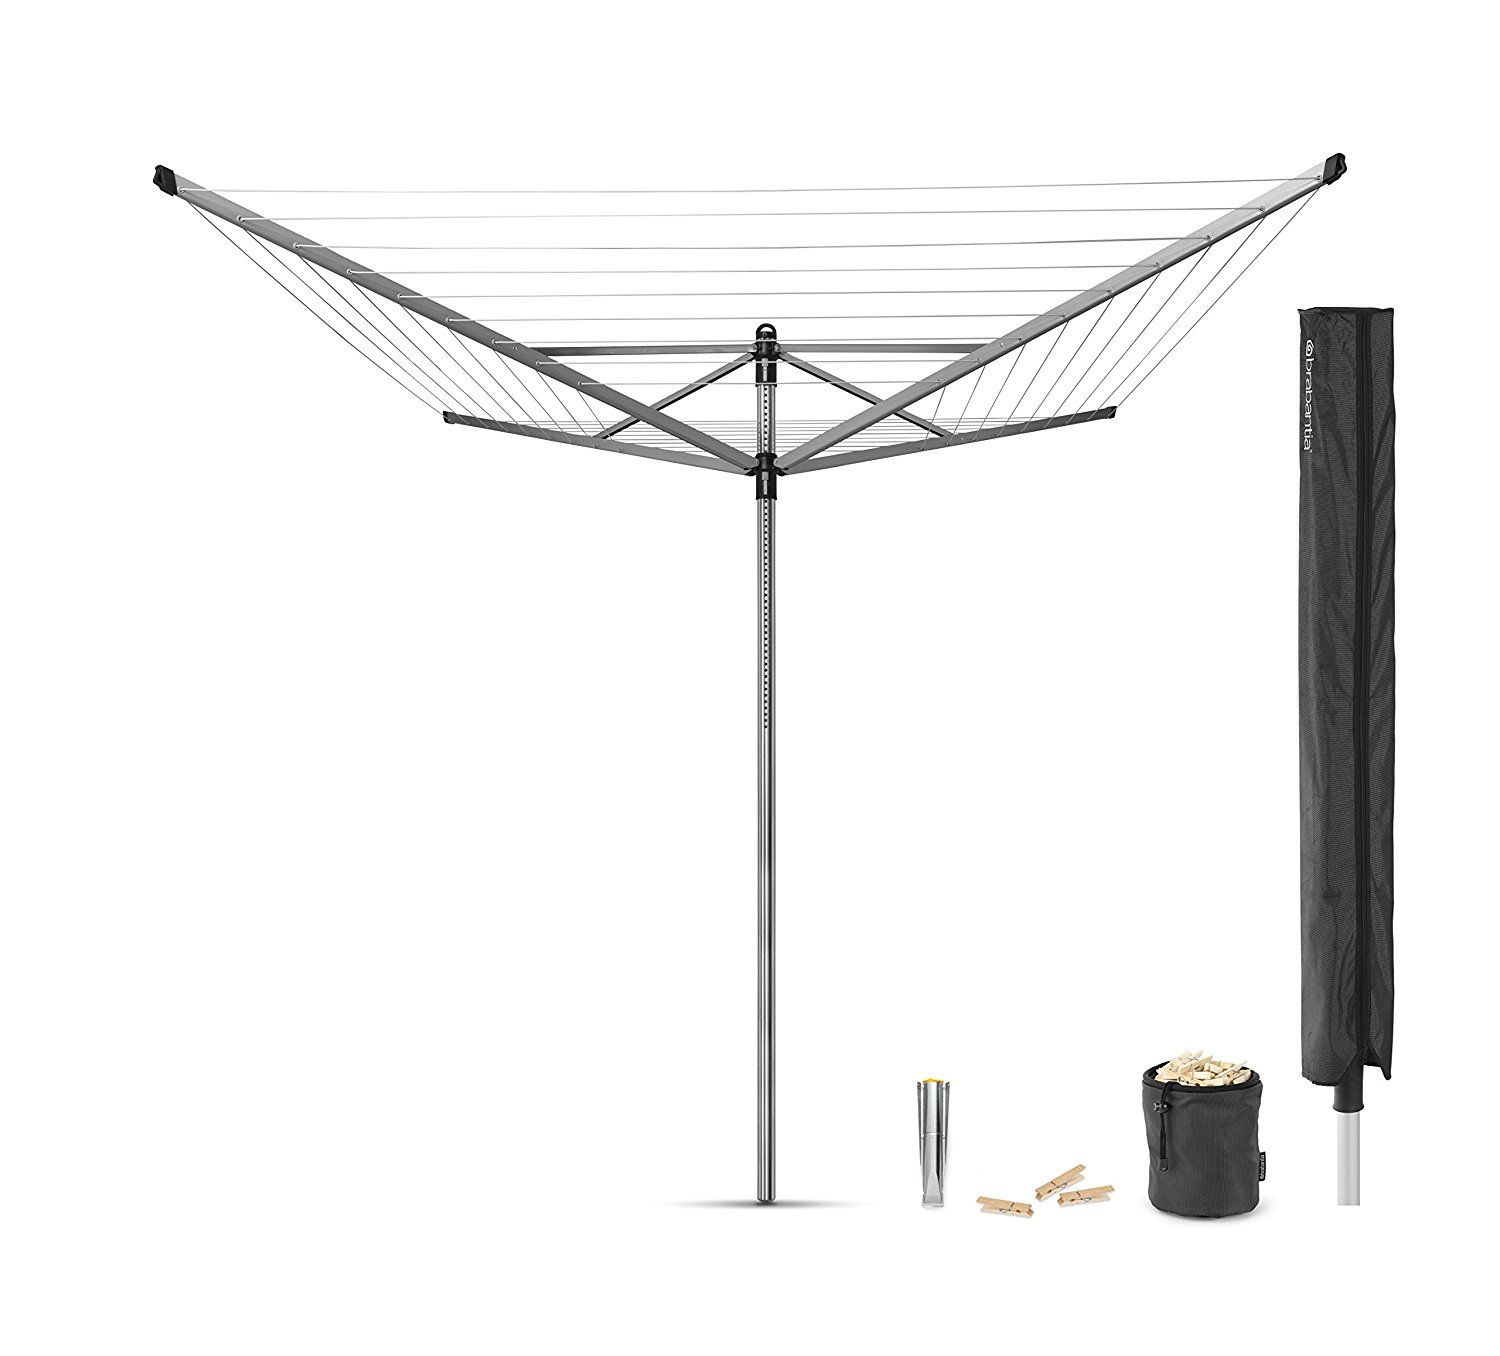 Brabantia Lift-O-Matic Rotary Airer with Accessories, 50 m - Silver by Brabantia